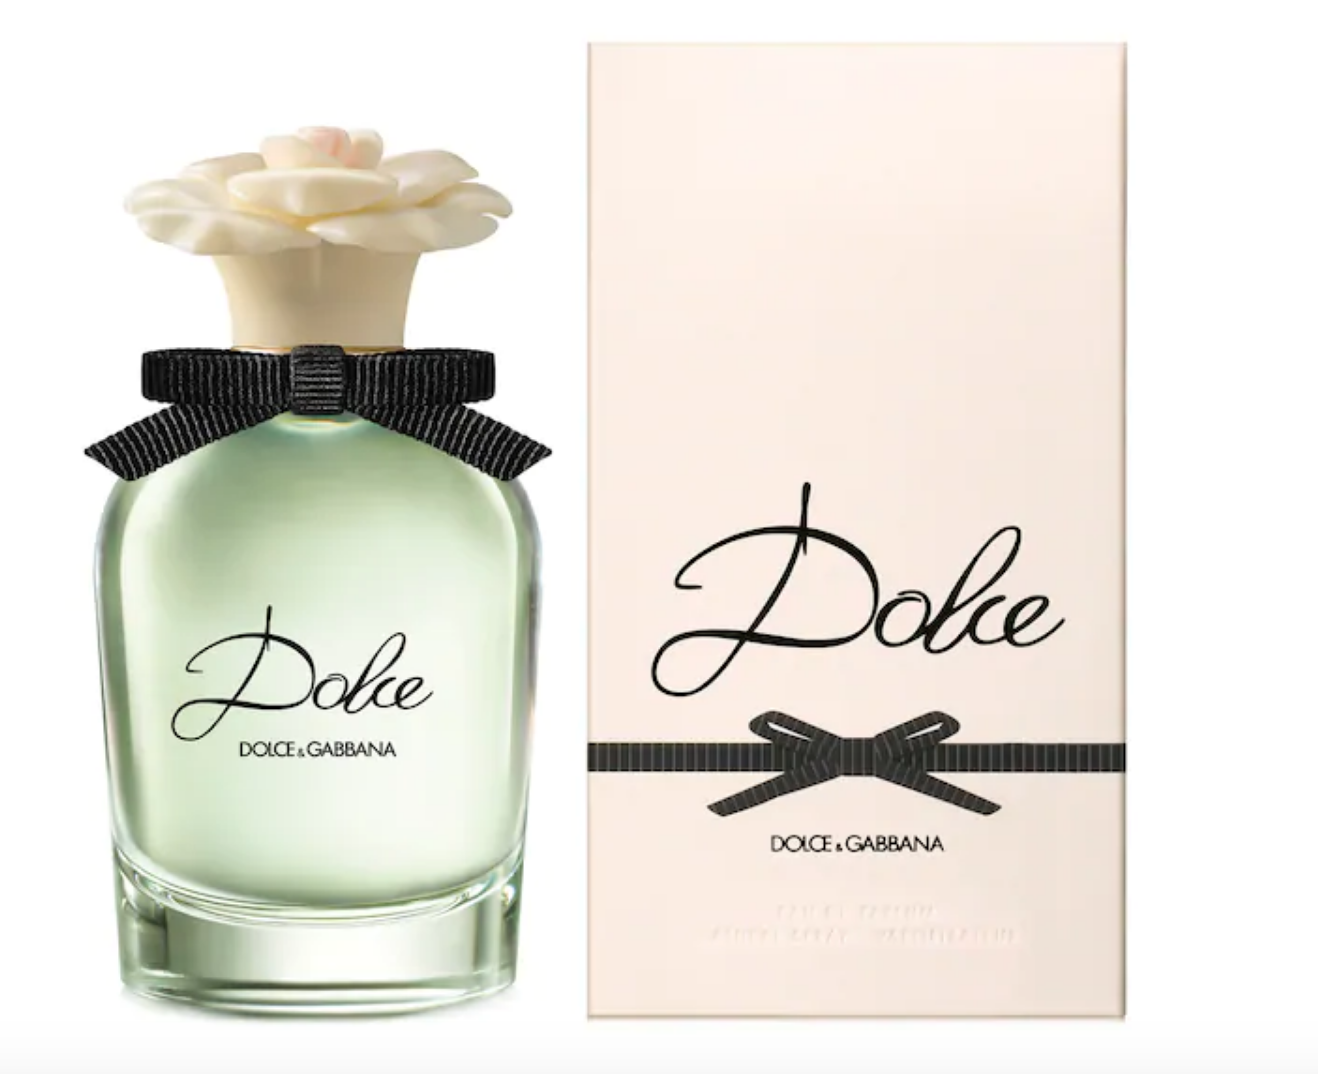 Dolce and Gabbana Dolce fragrance perfume millennial mom gift ideas